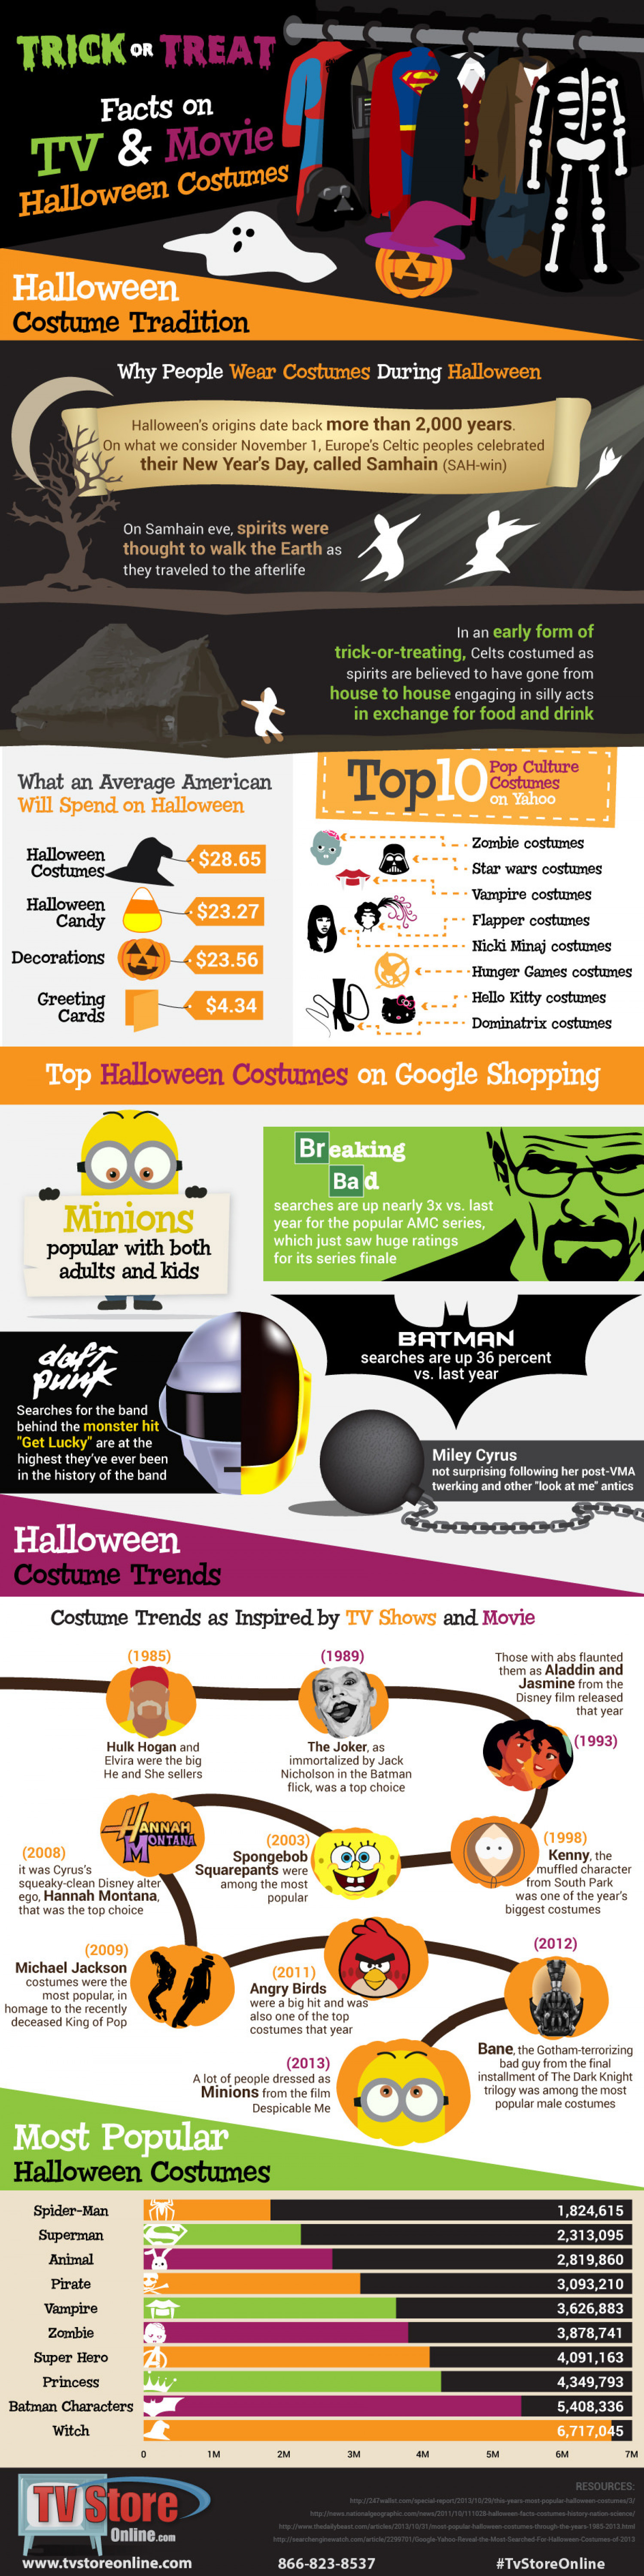 Trick or Treat: Facts on TV and Movie Halloween Costumes Infographic